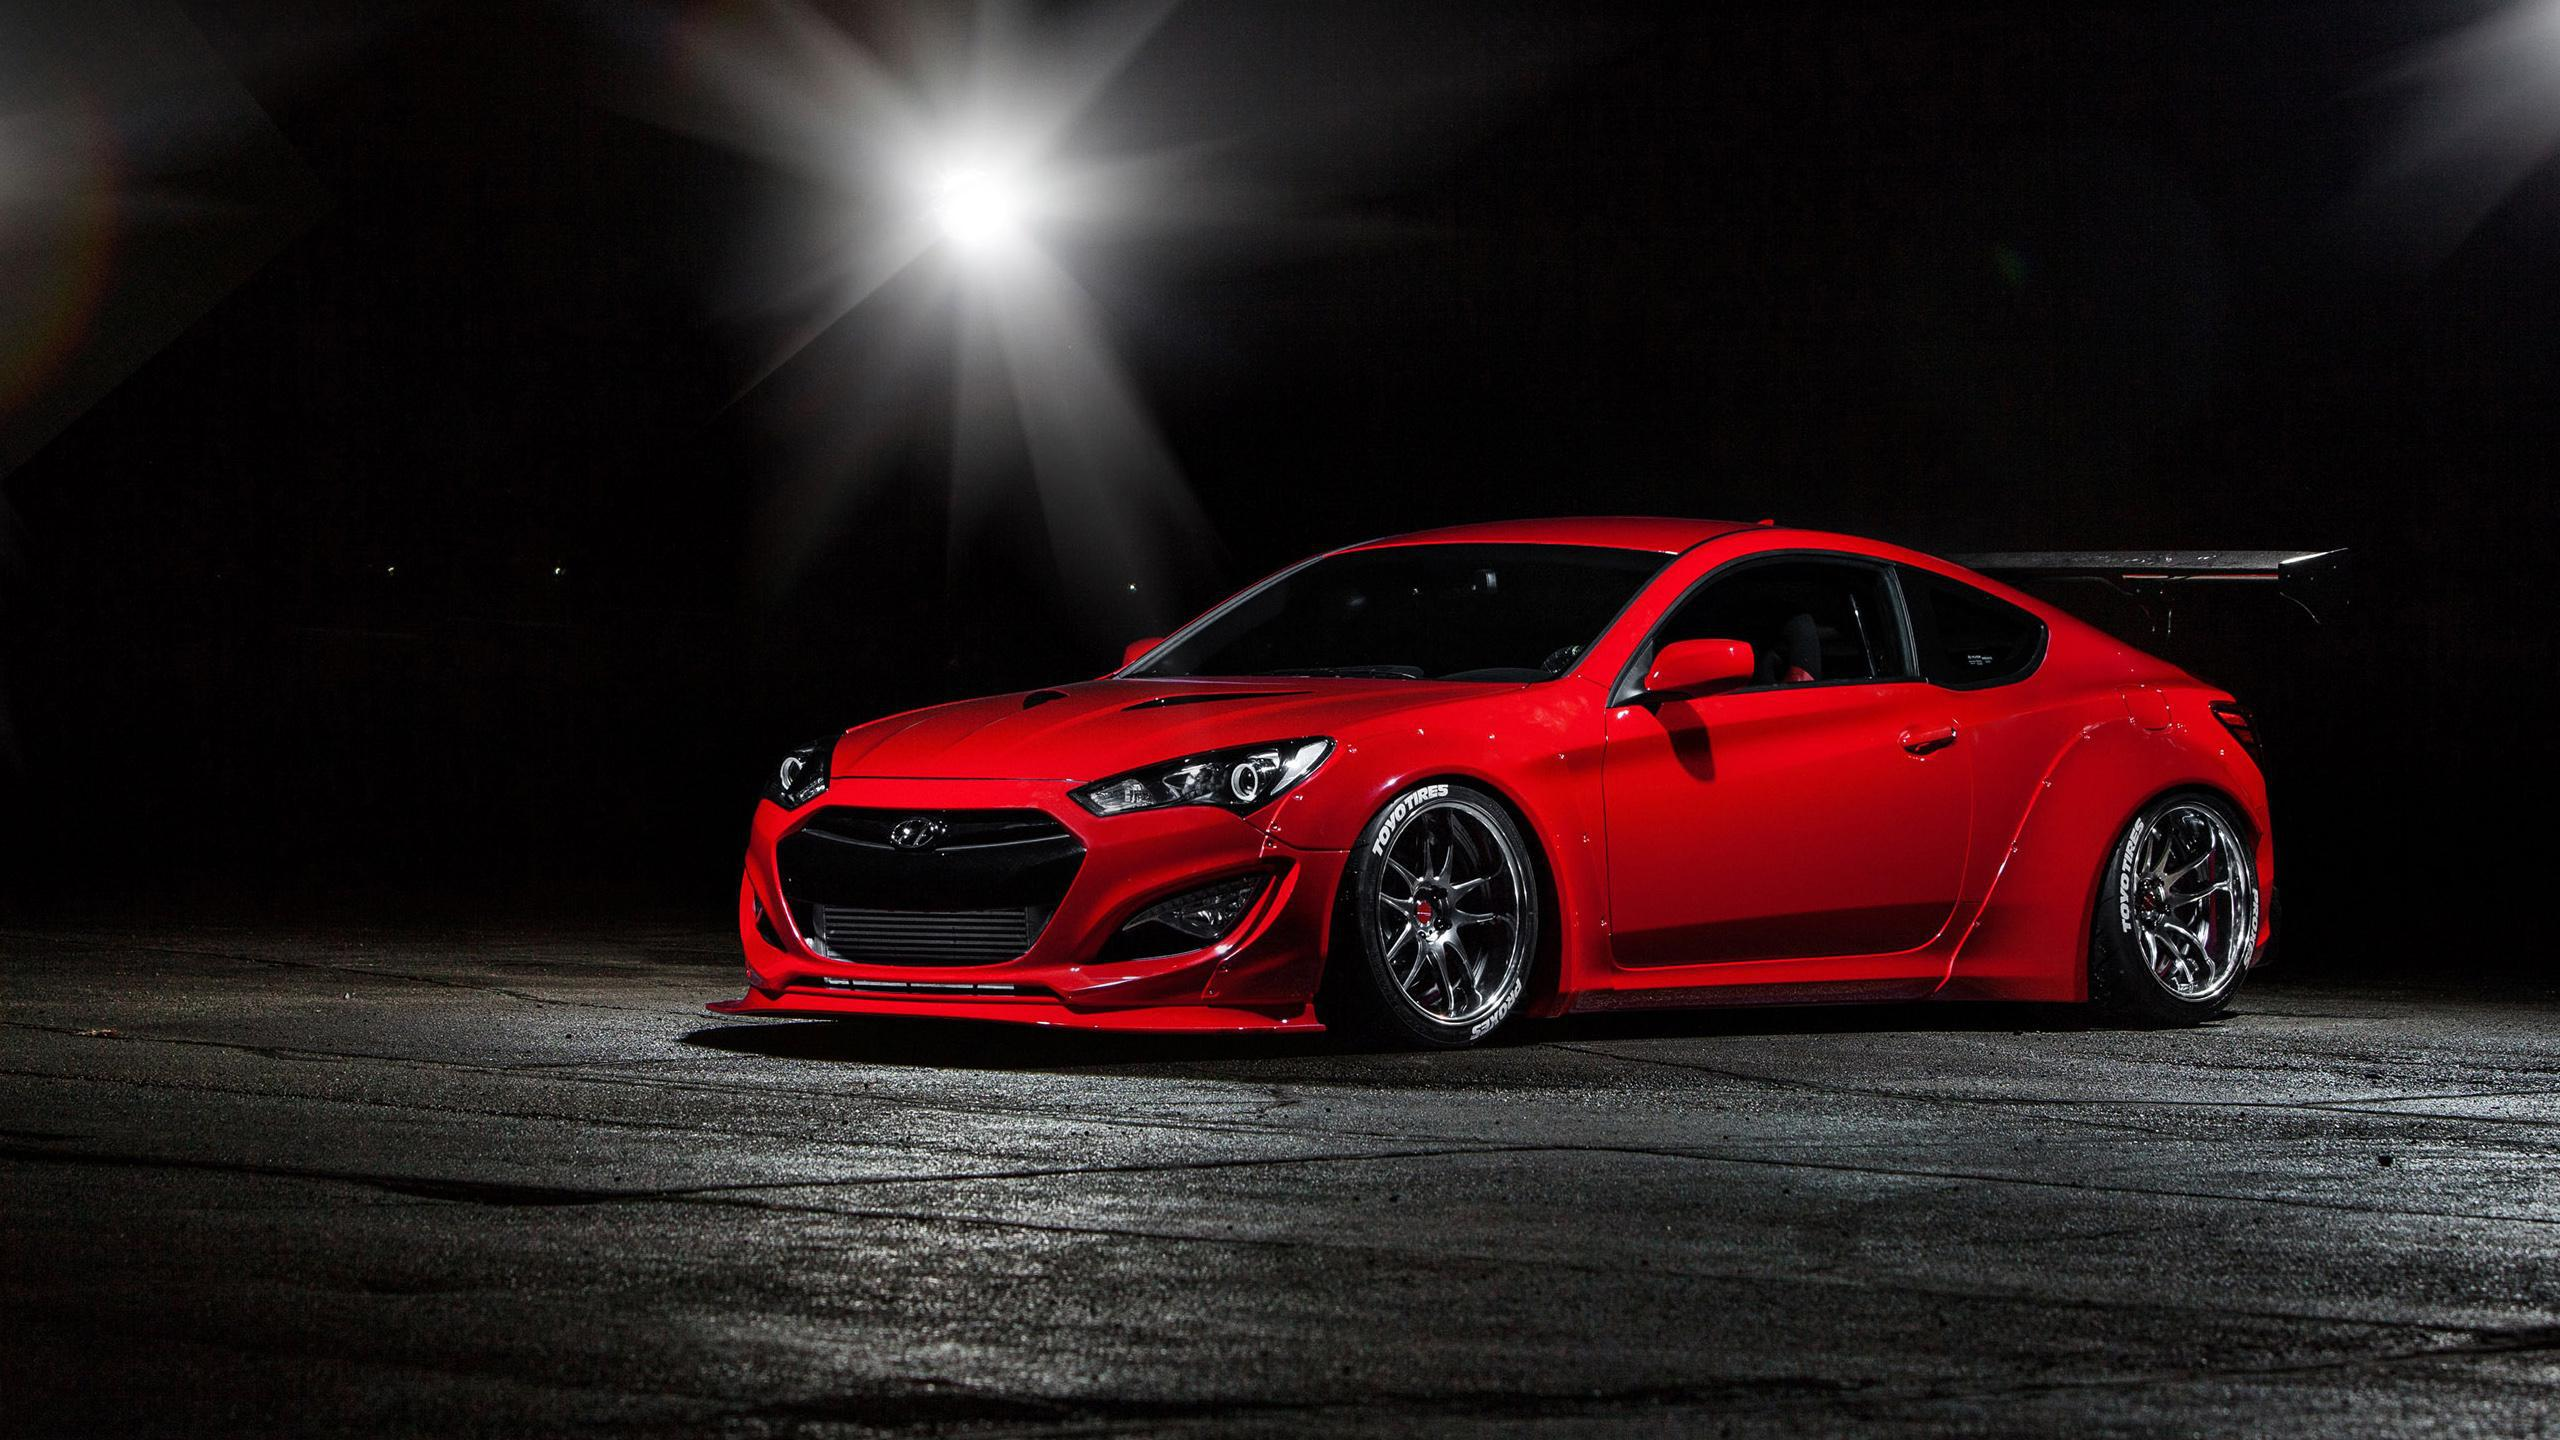 Hyundai Genesis Coupe Wallpapers Images Photos Pictures Backgrounds 2560x1440